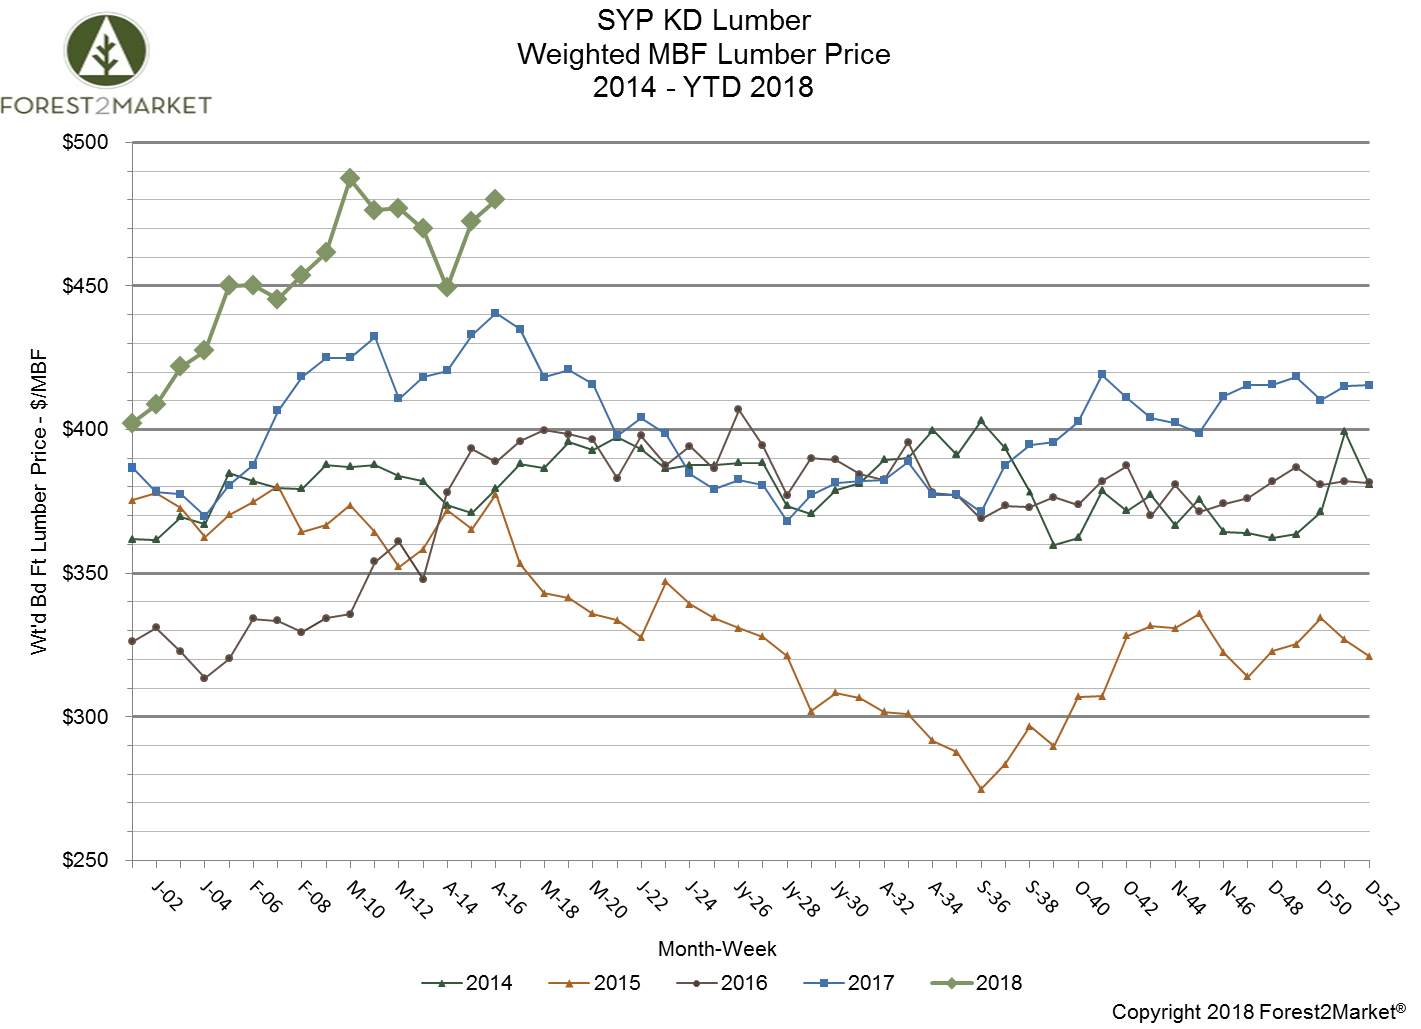 Southern Yellow Pine Lumber Prices More Volatile in April